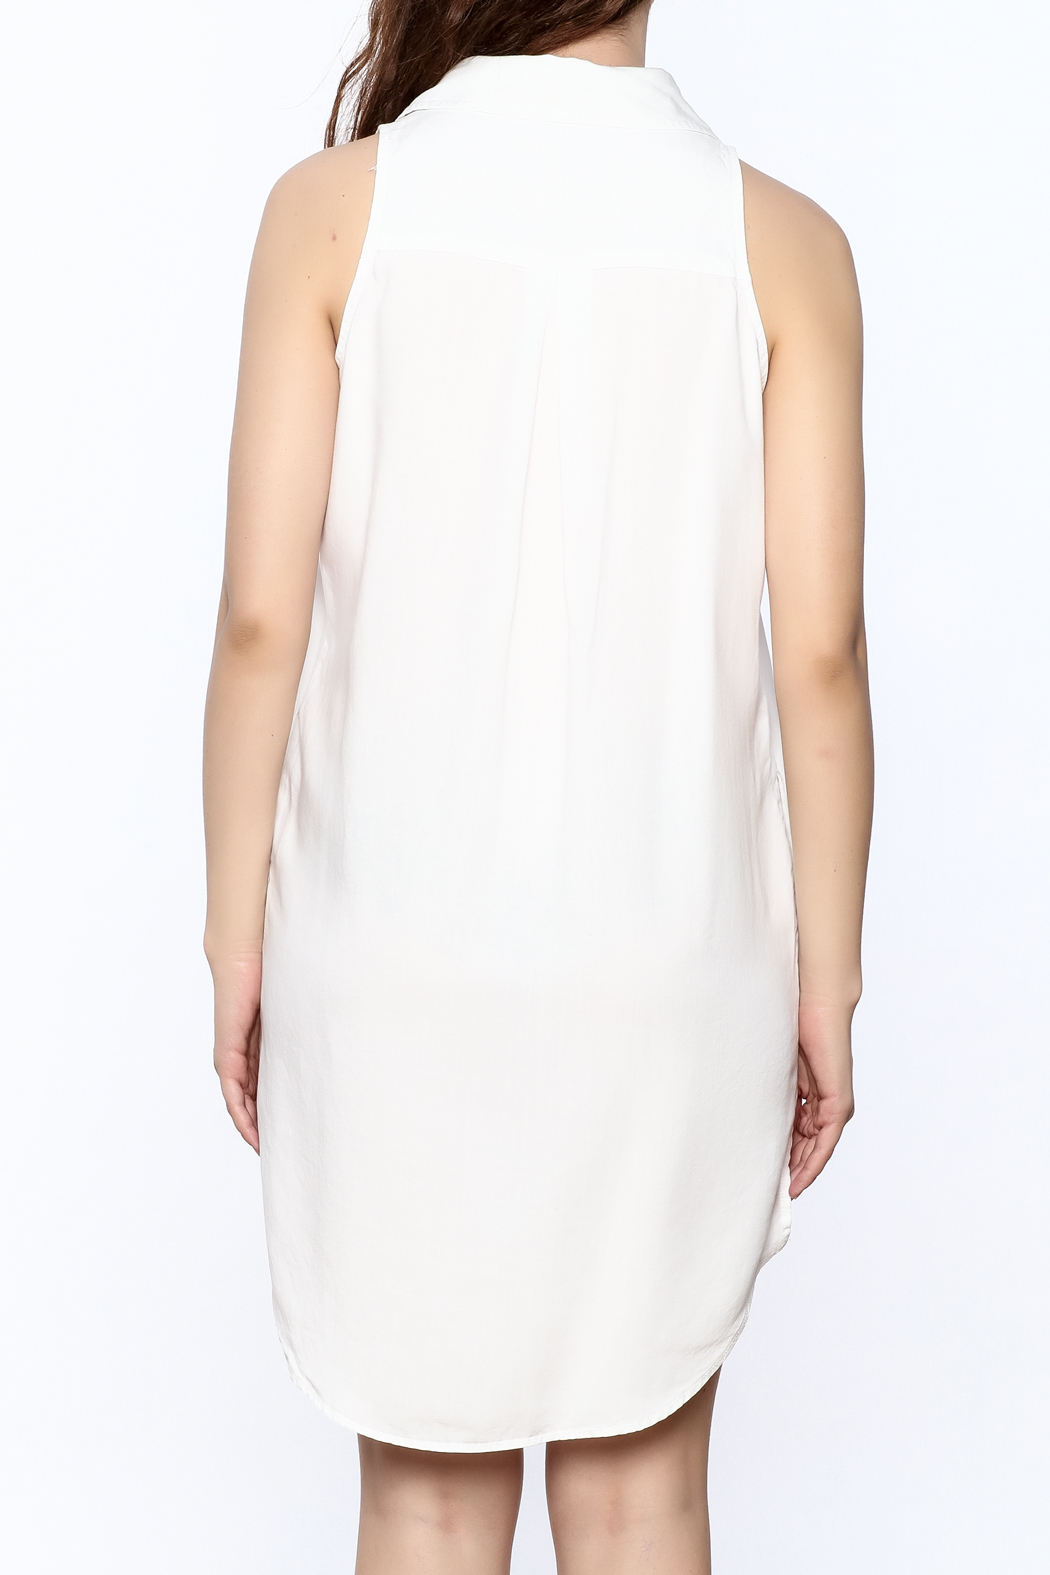 Velvet Heart White Sleeveless Dress - Back Cropped Image